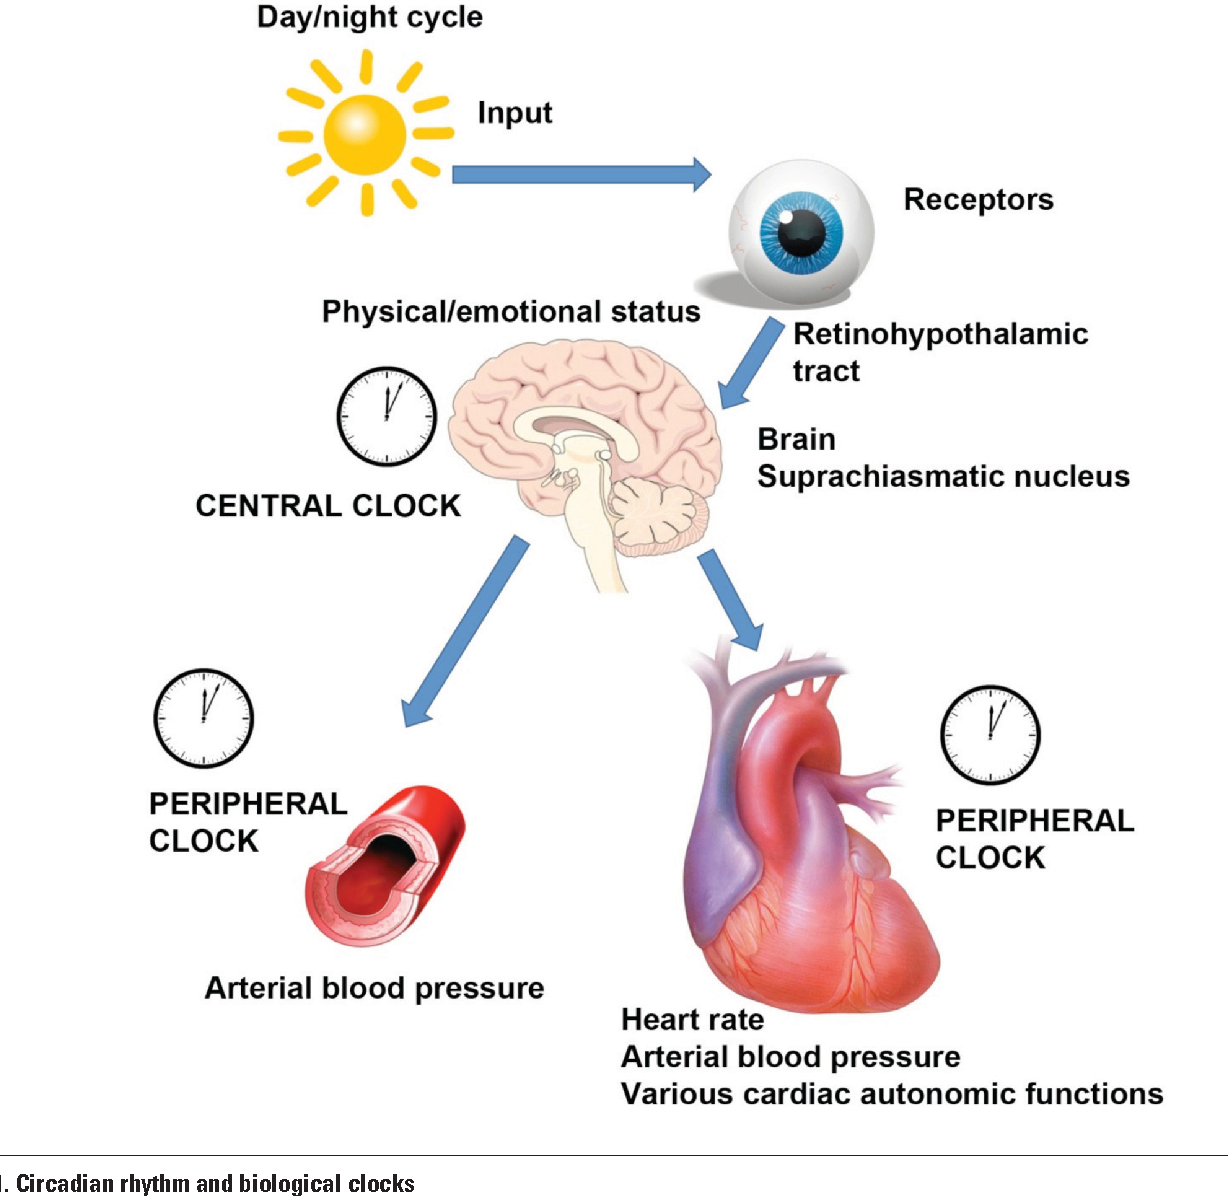 Circadian blood pressure pattern and cardiac autonomic functions ...